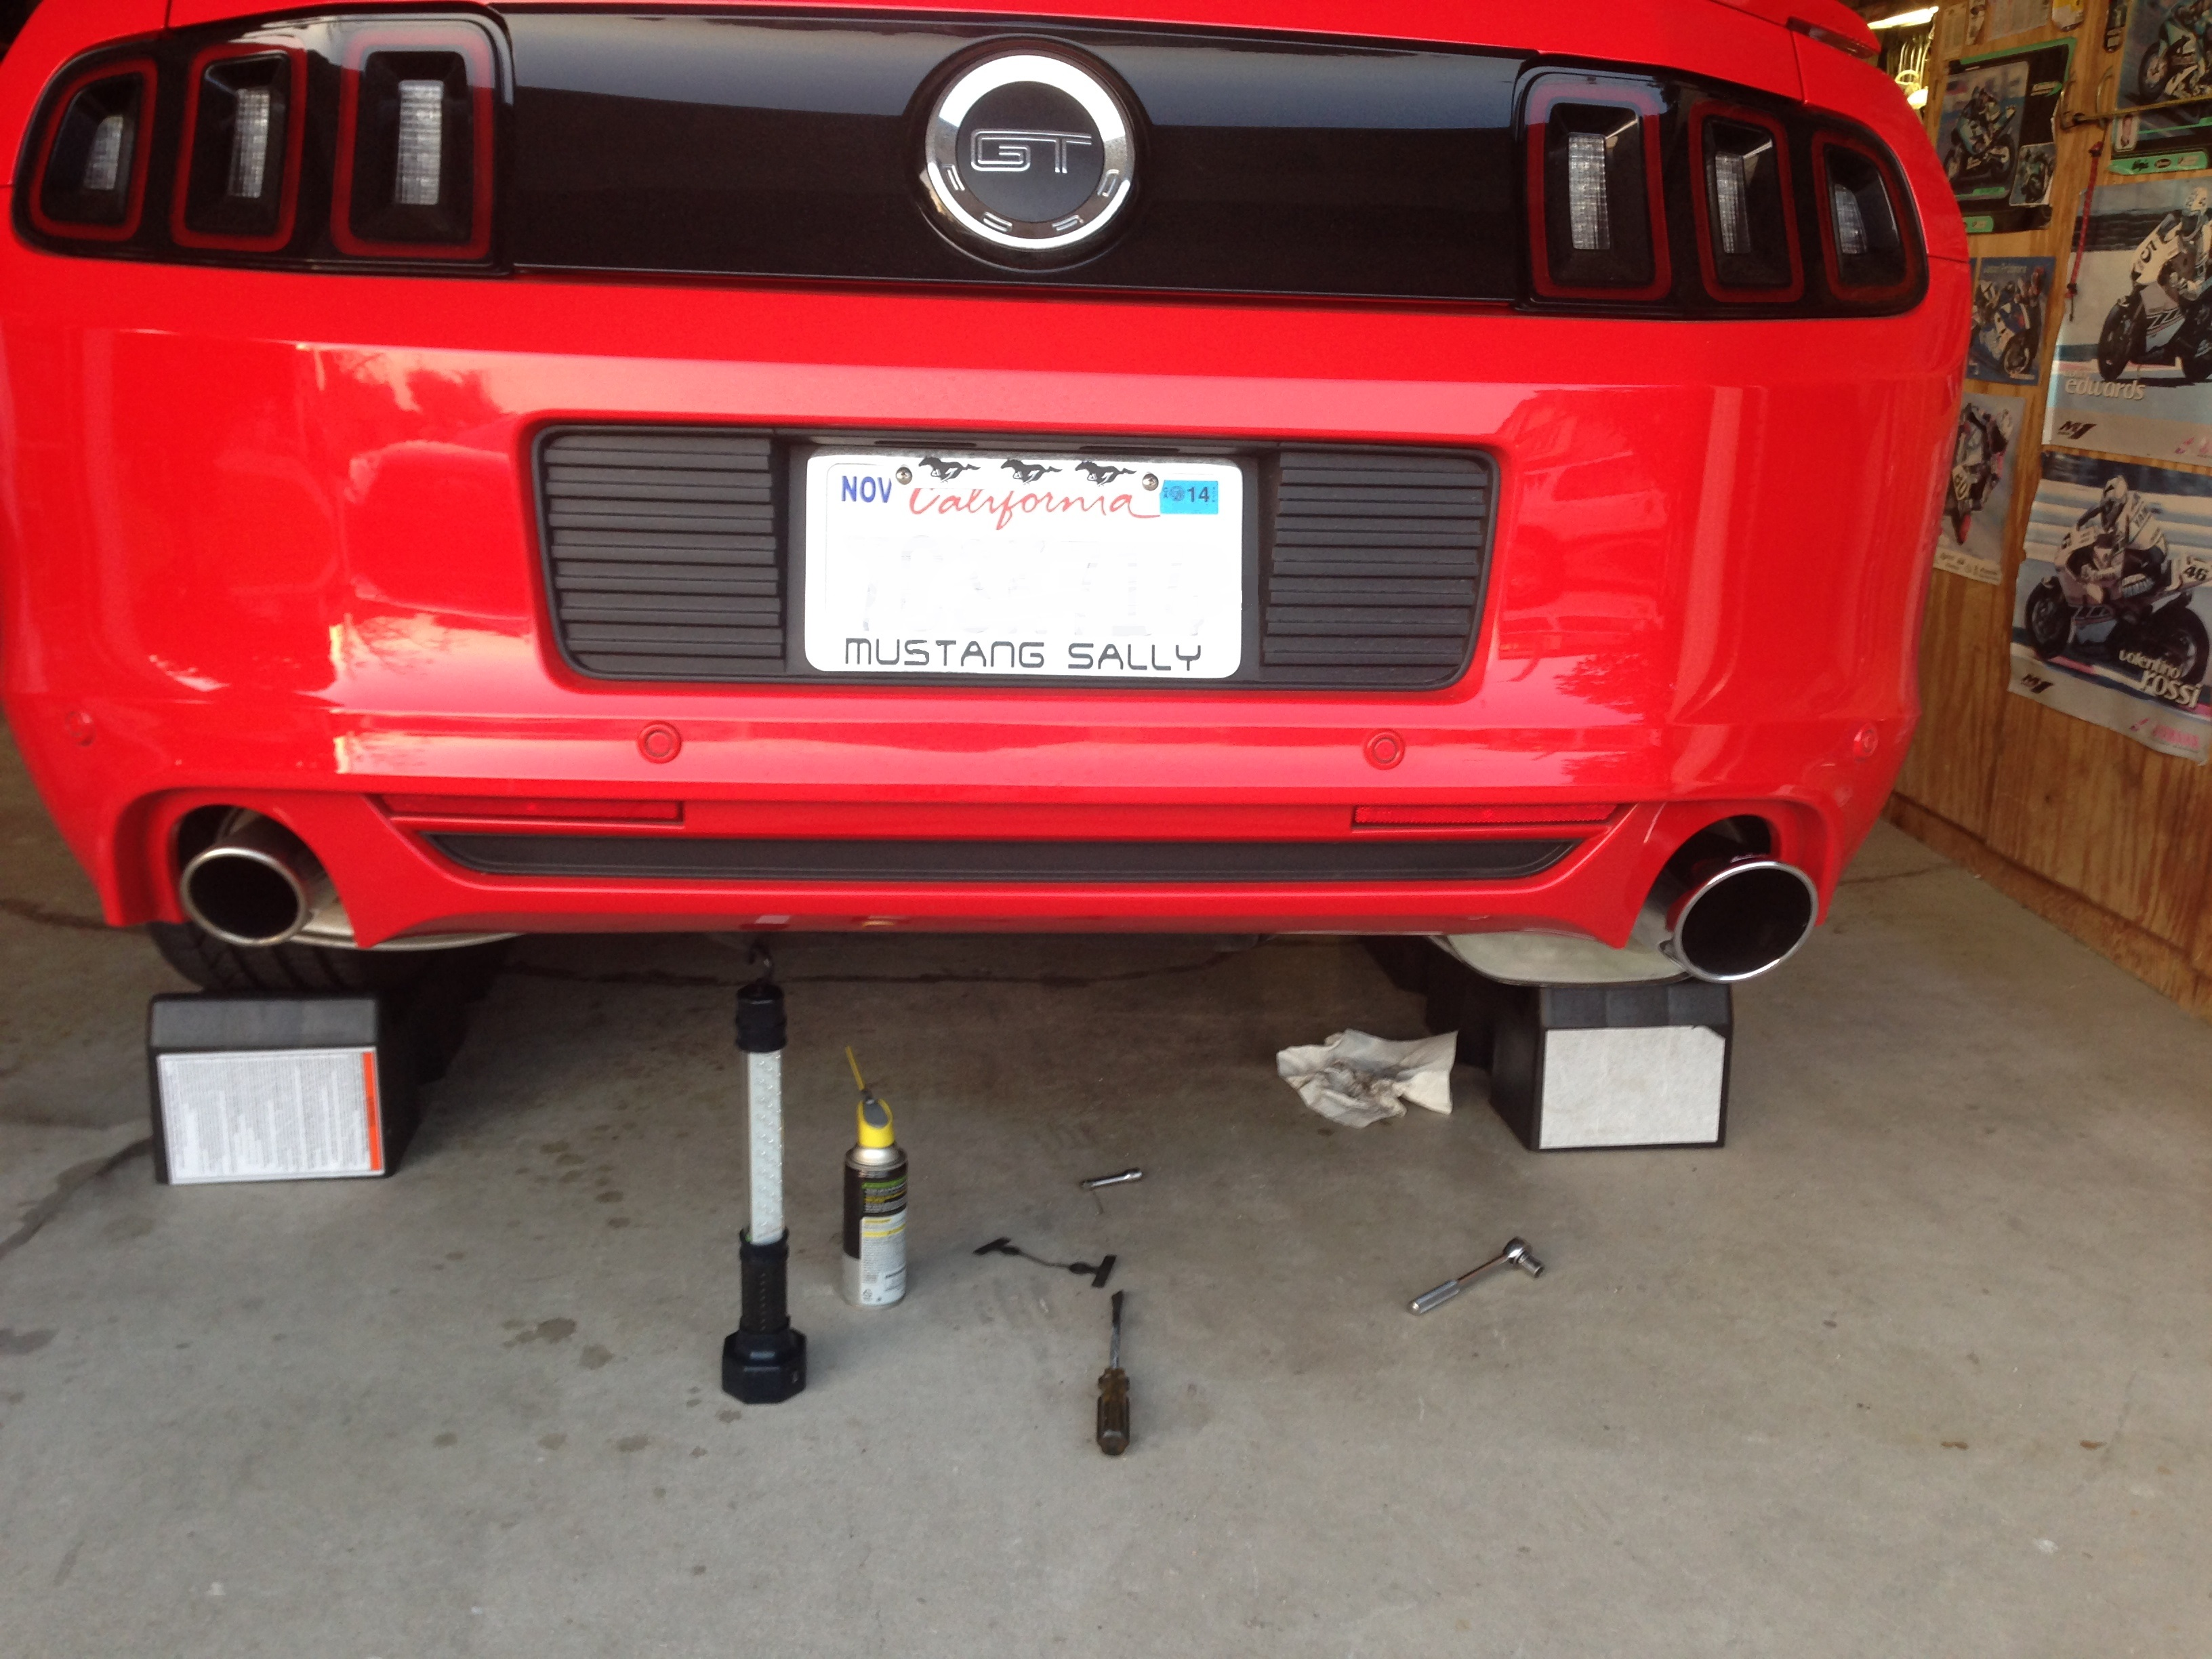 Click image for larger version  Name:GT Pipes 2.jpg Views:113 Size:1.58 MB ID:152156